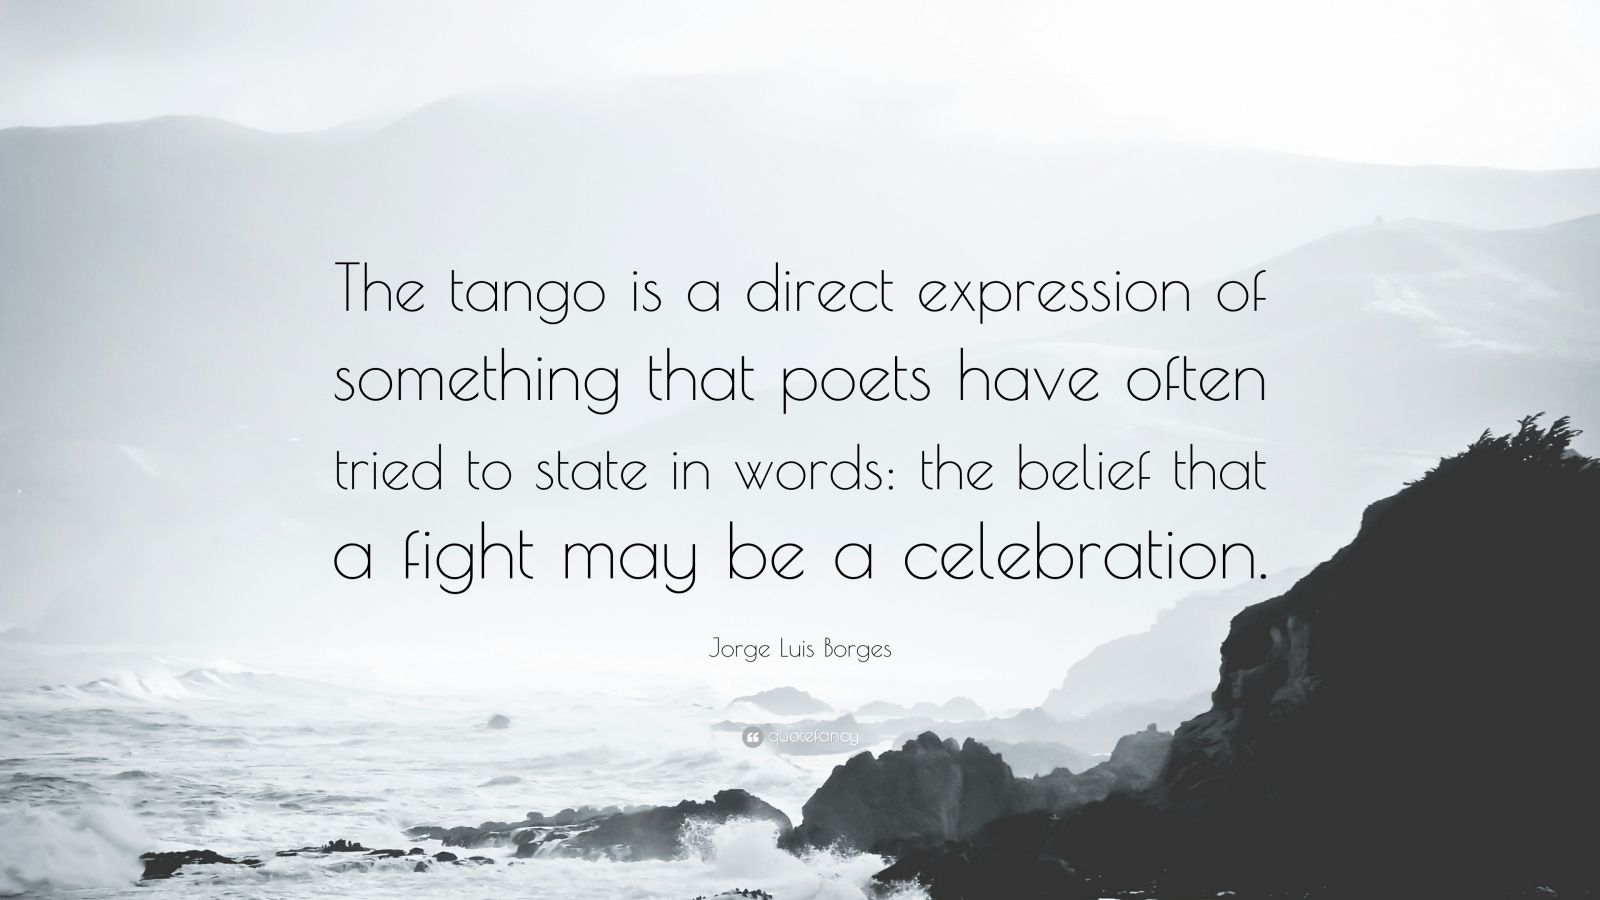 """Jorge Luis Borges Quote: """"The tango is a direct expression of something that poets have often tried to state in words: the belief that a fight may be a celebration."""""""